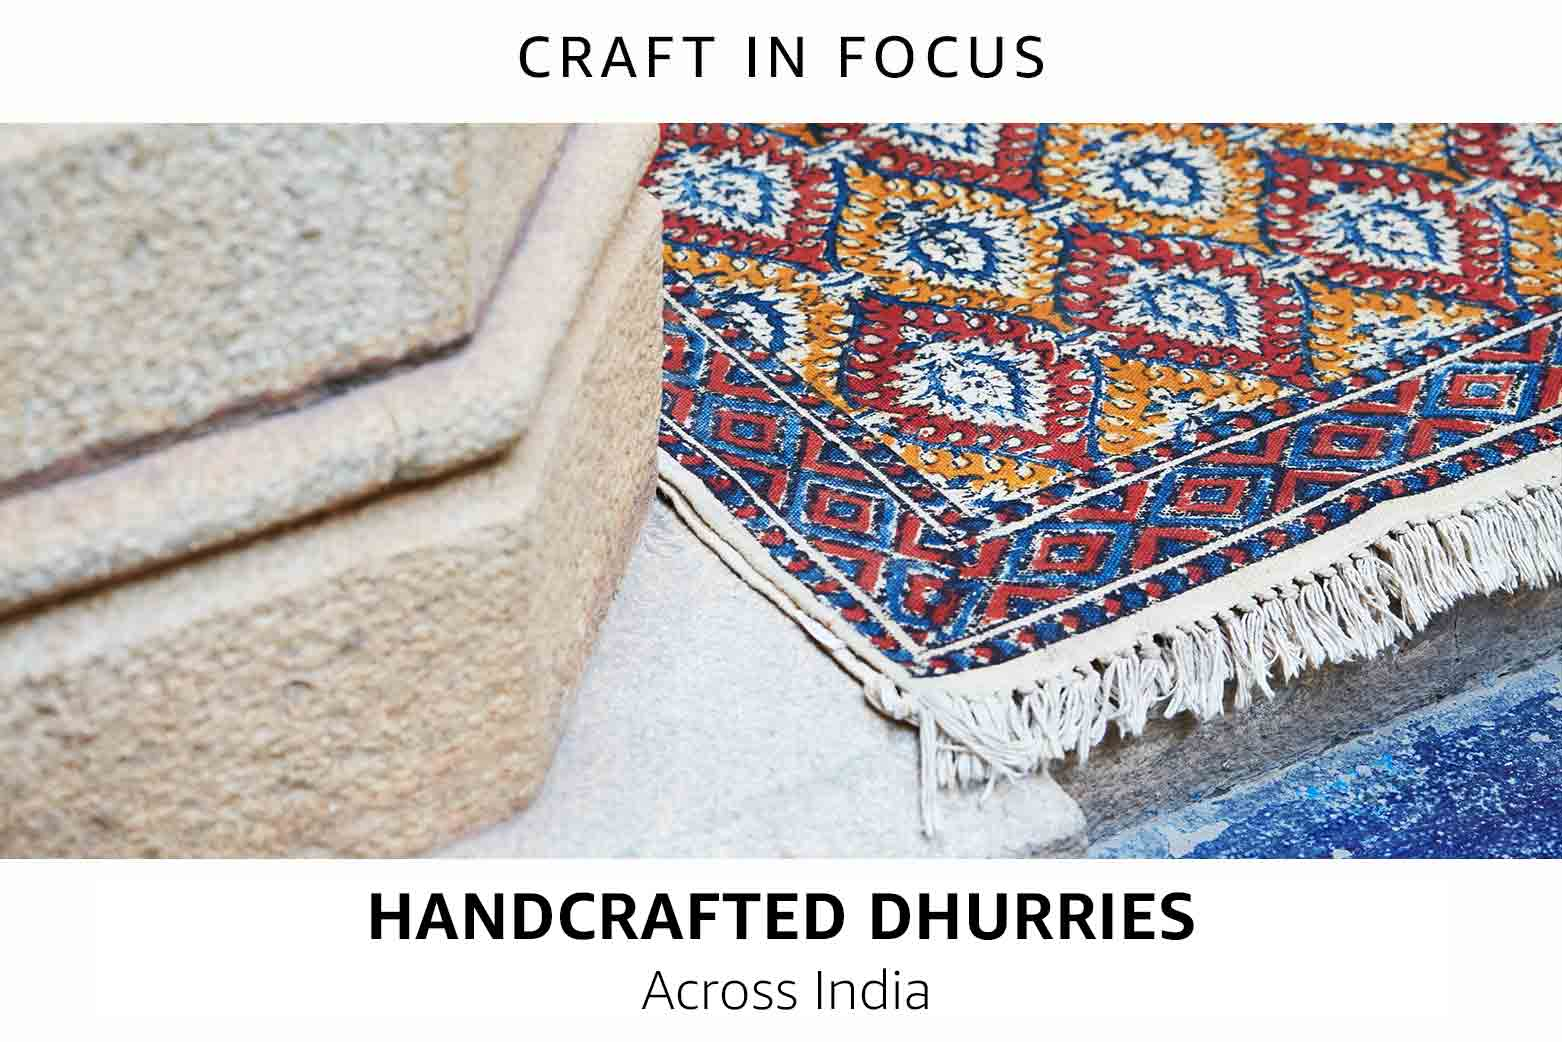 Handcrafted Dhurries